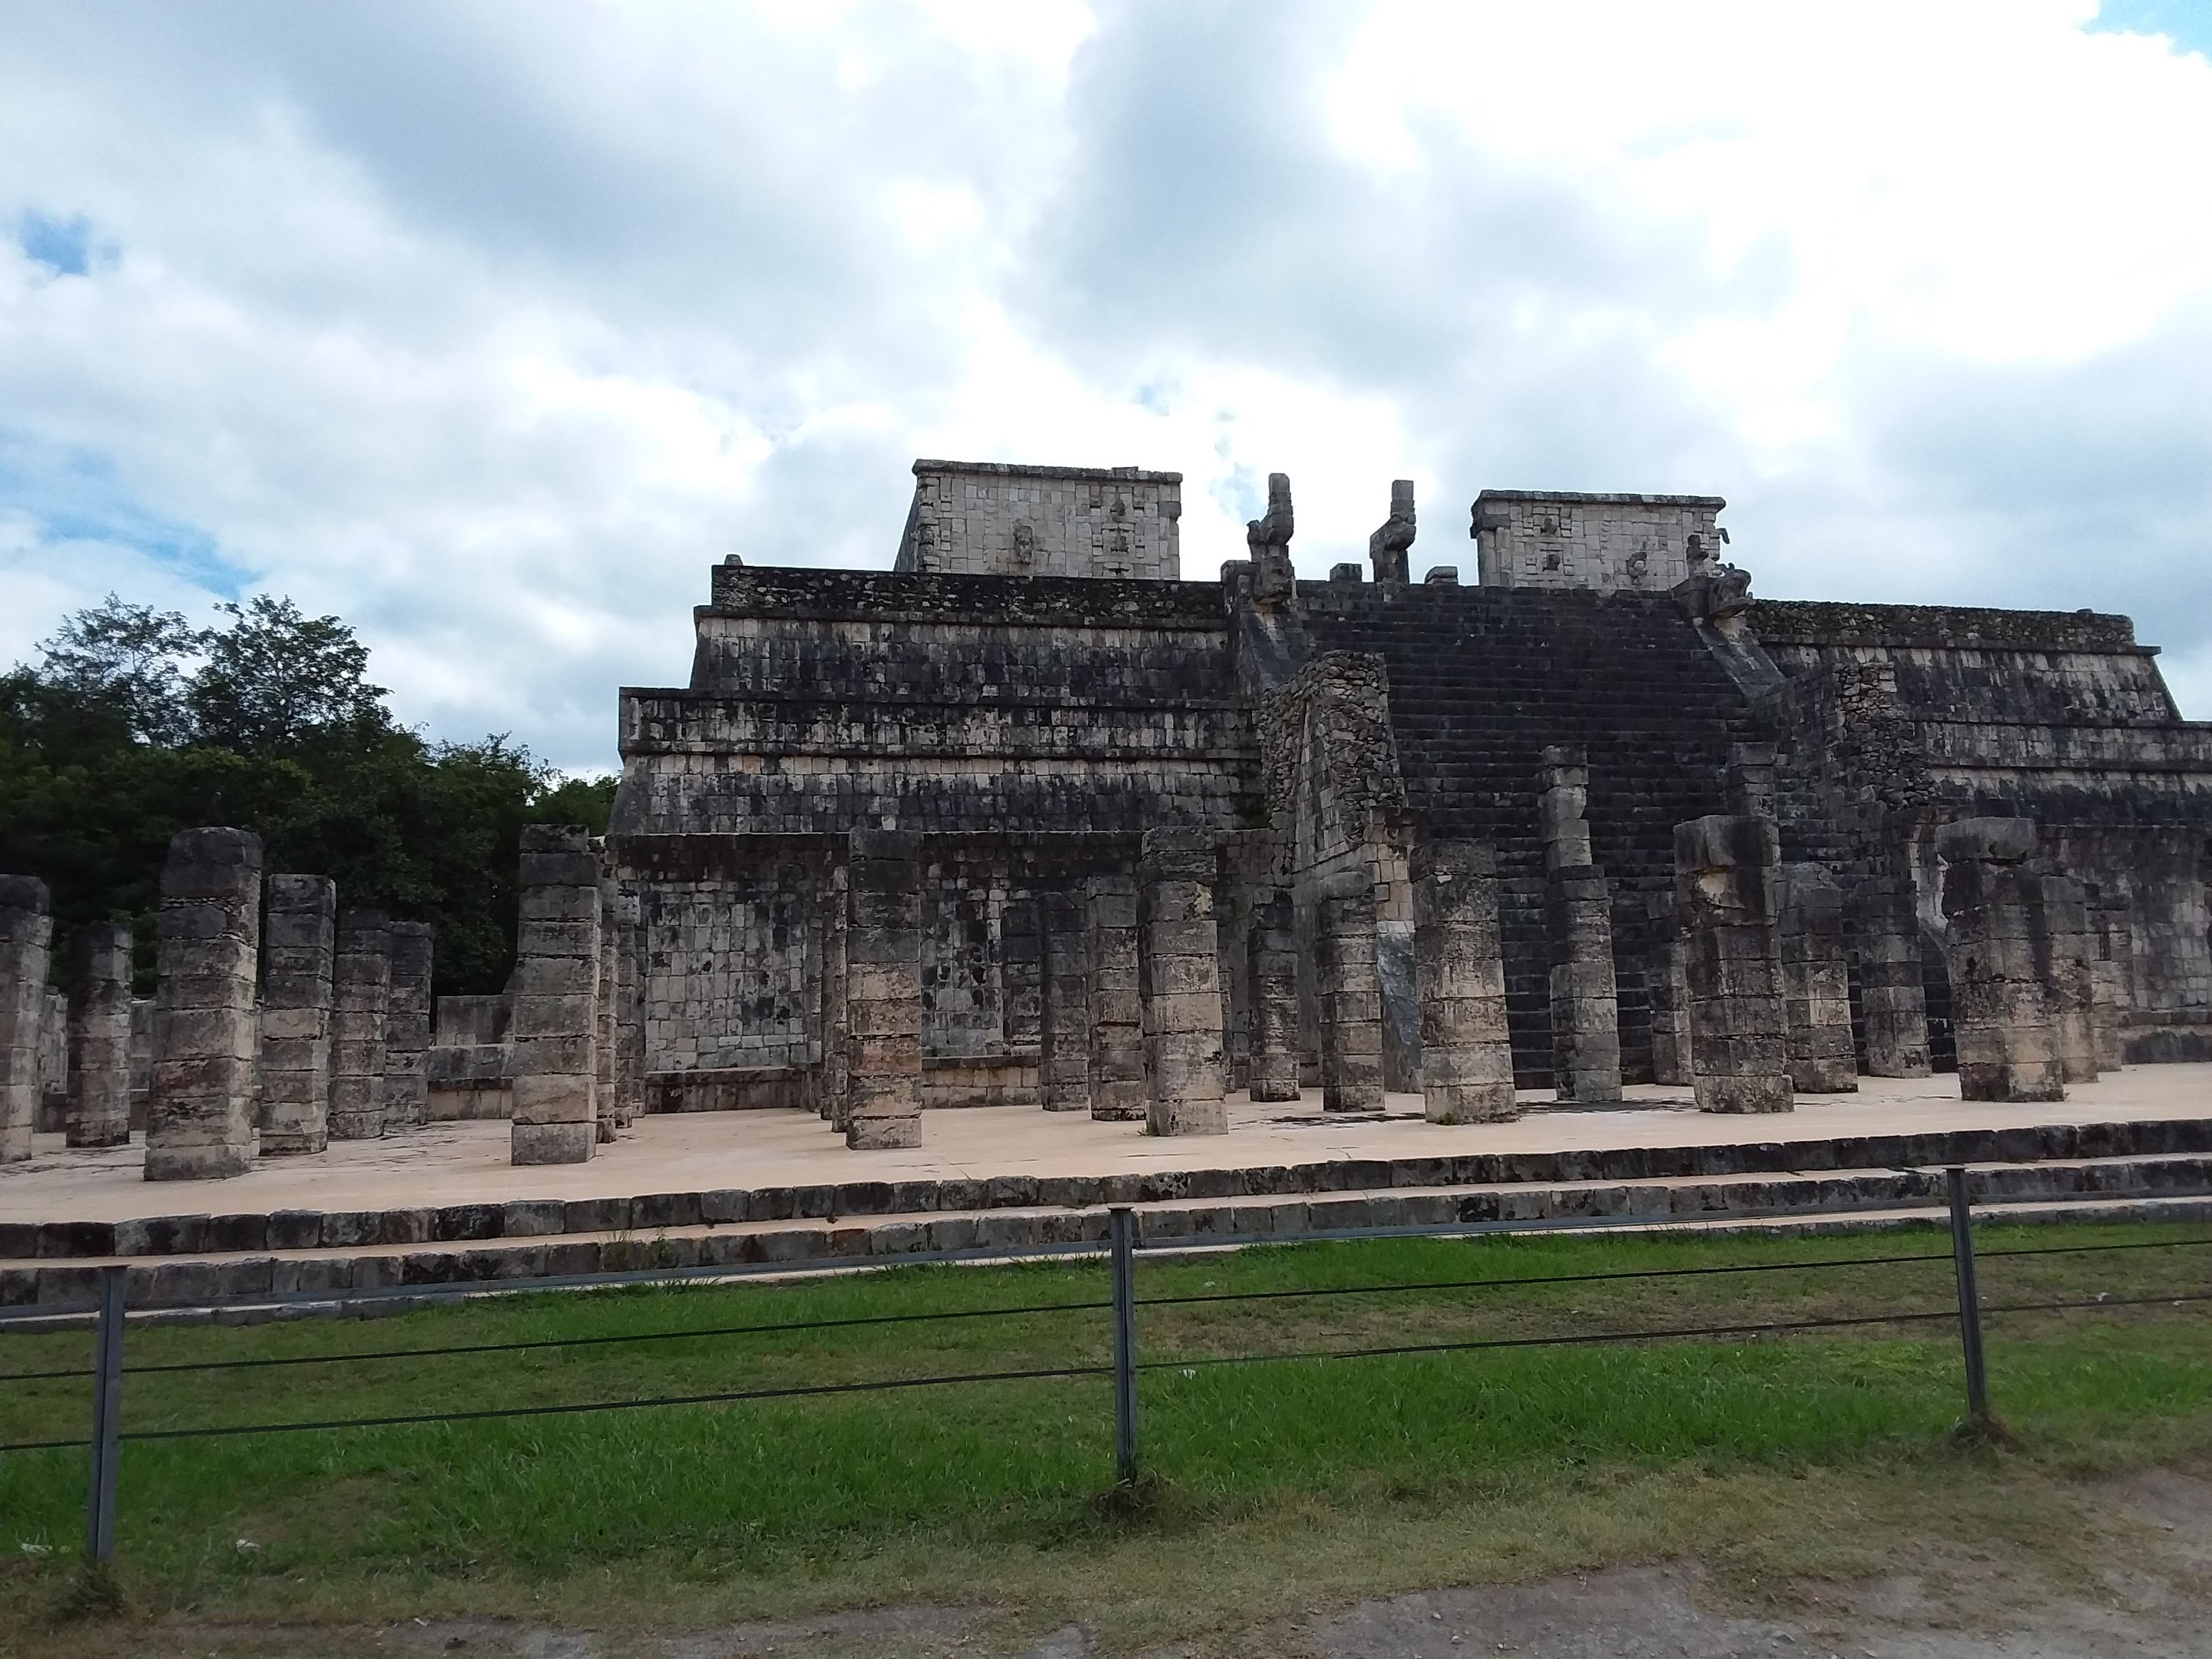 20181224_092504-jpg.48211_Chichen Itza (Not So Much a Story Than It Is Pictures)_Travel Stories_Squat the Planet_4:02 PM